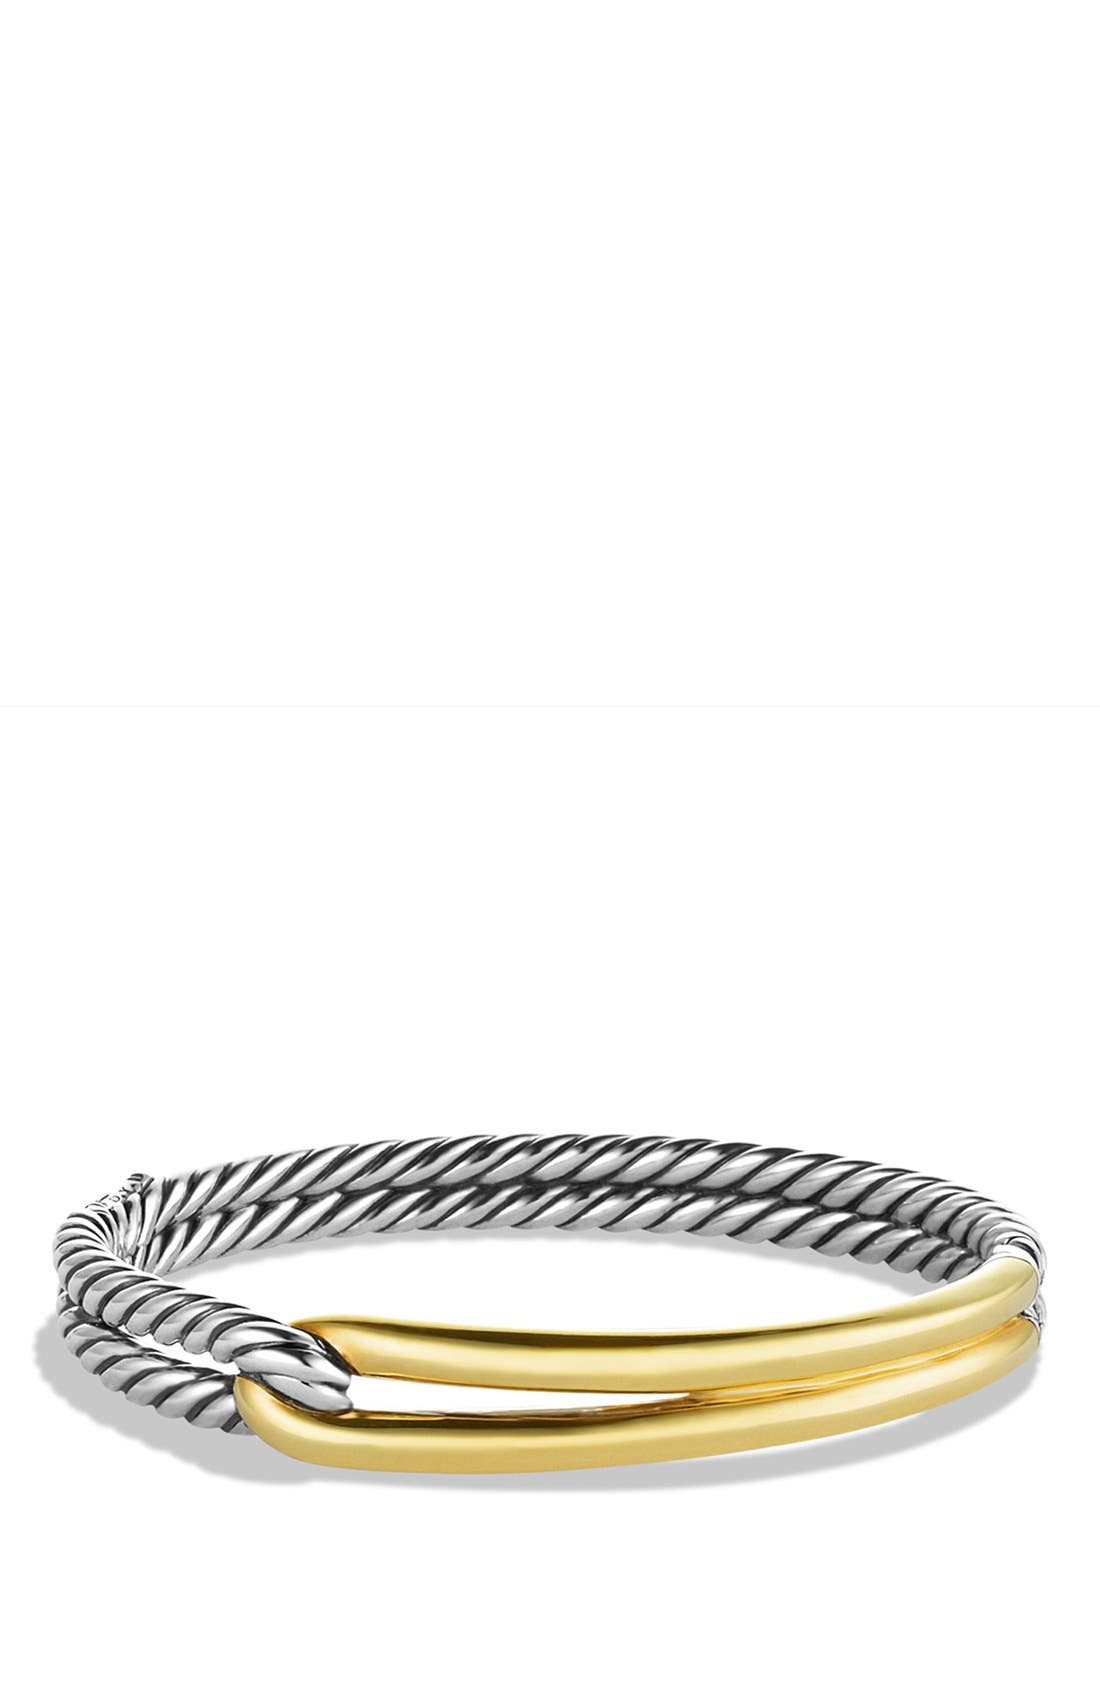 Alternate Image 1 Selected - David Yurman 'Labyrinth' Single-Loop Bracelet with Gold